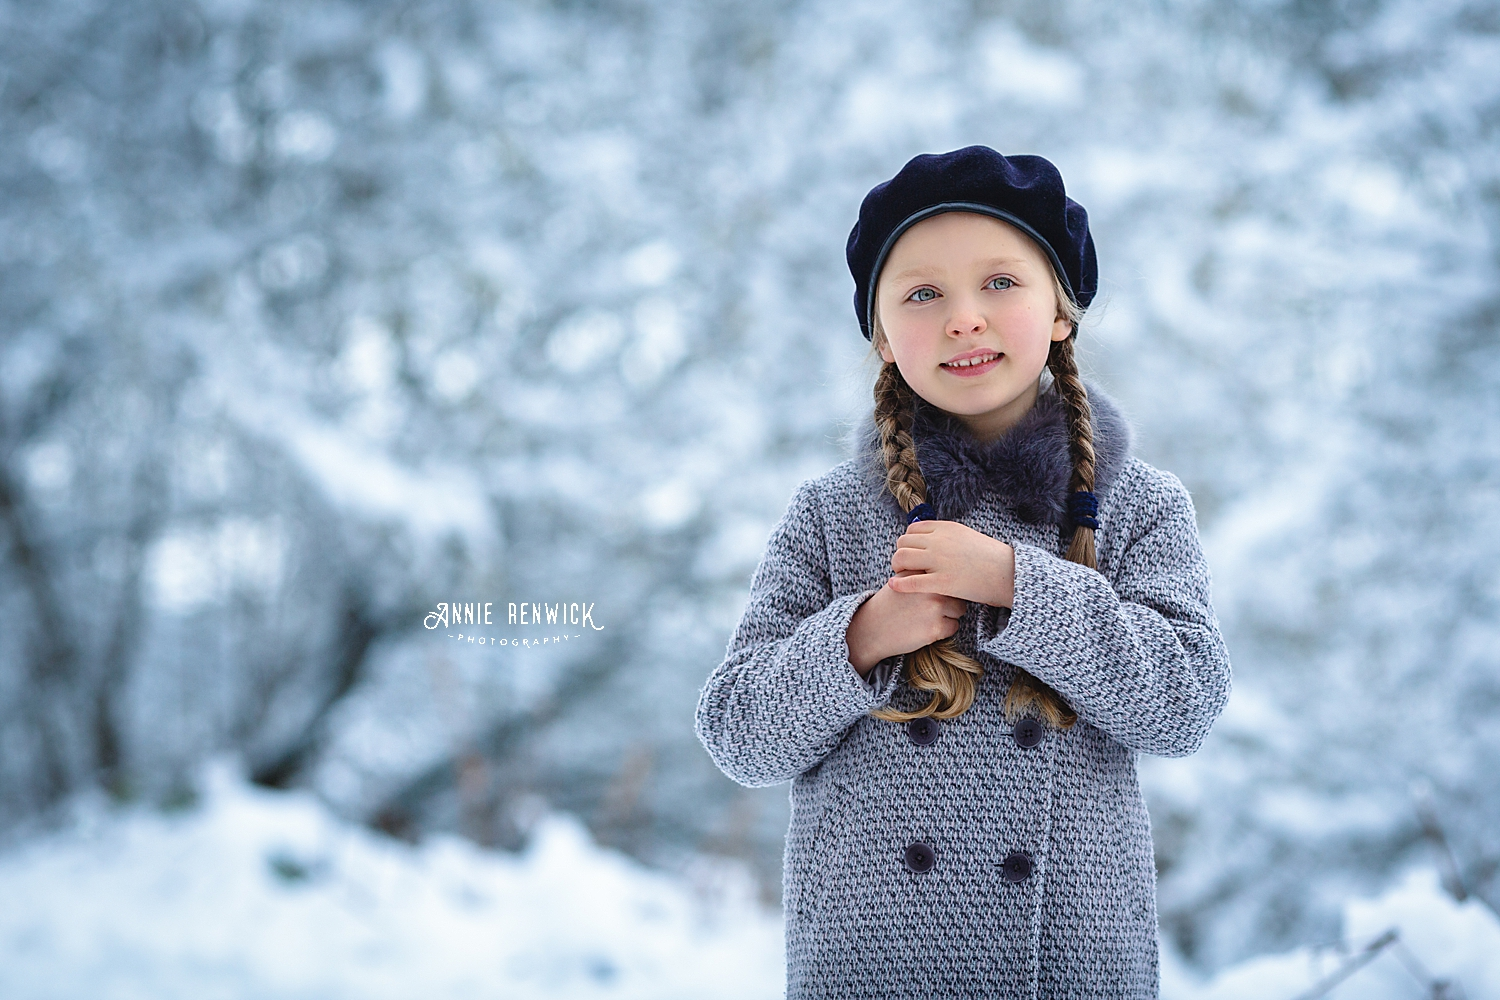 outdoor snow photography winter portrait